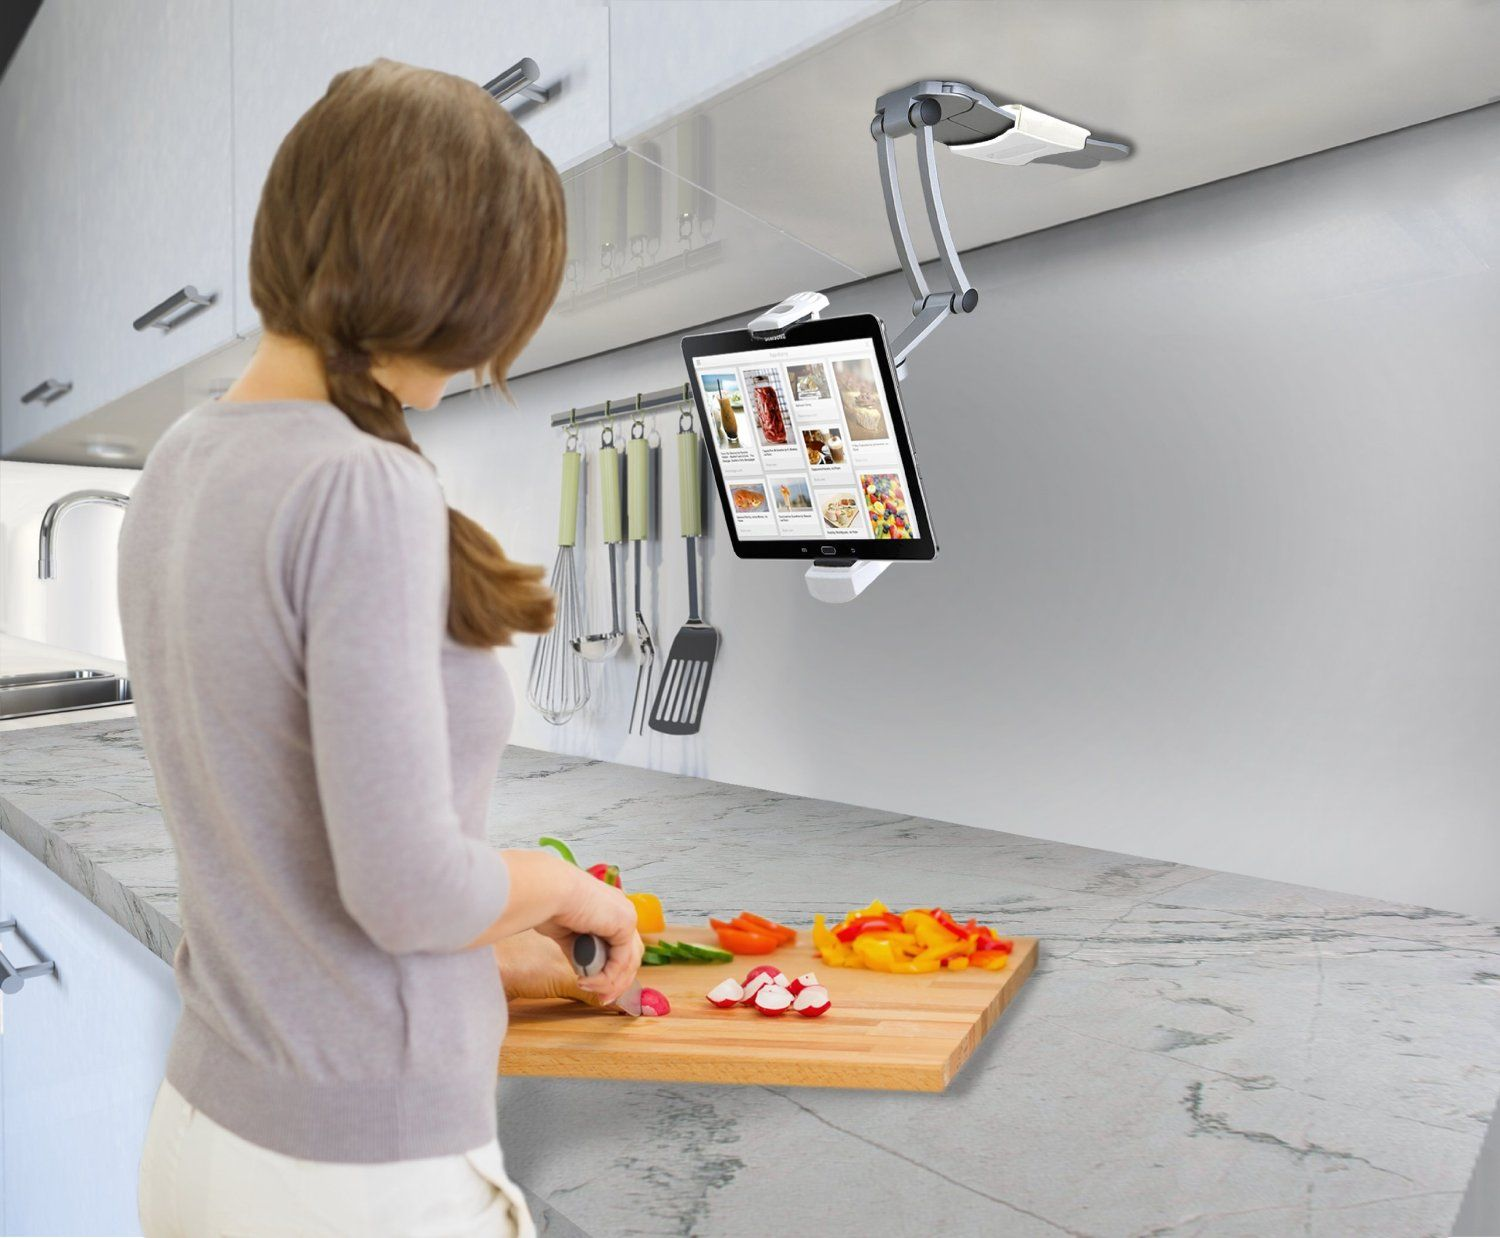 The Sturdy And A Stylish Kitchen Gadget Can Be Mounted On A Wall, Under The